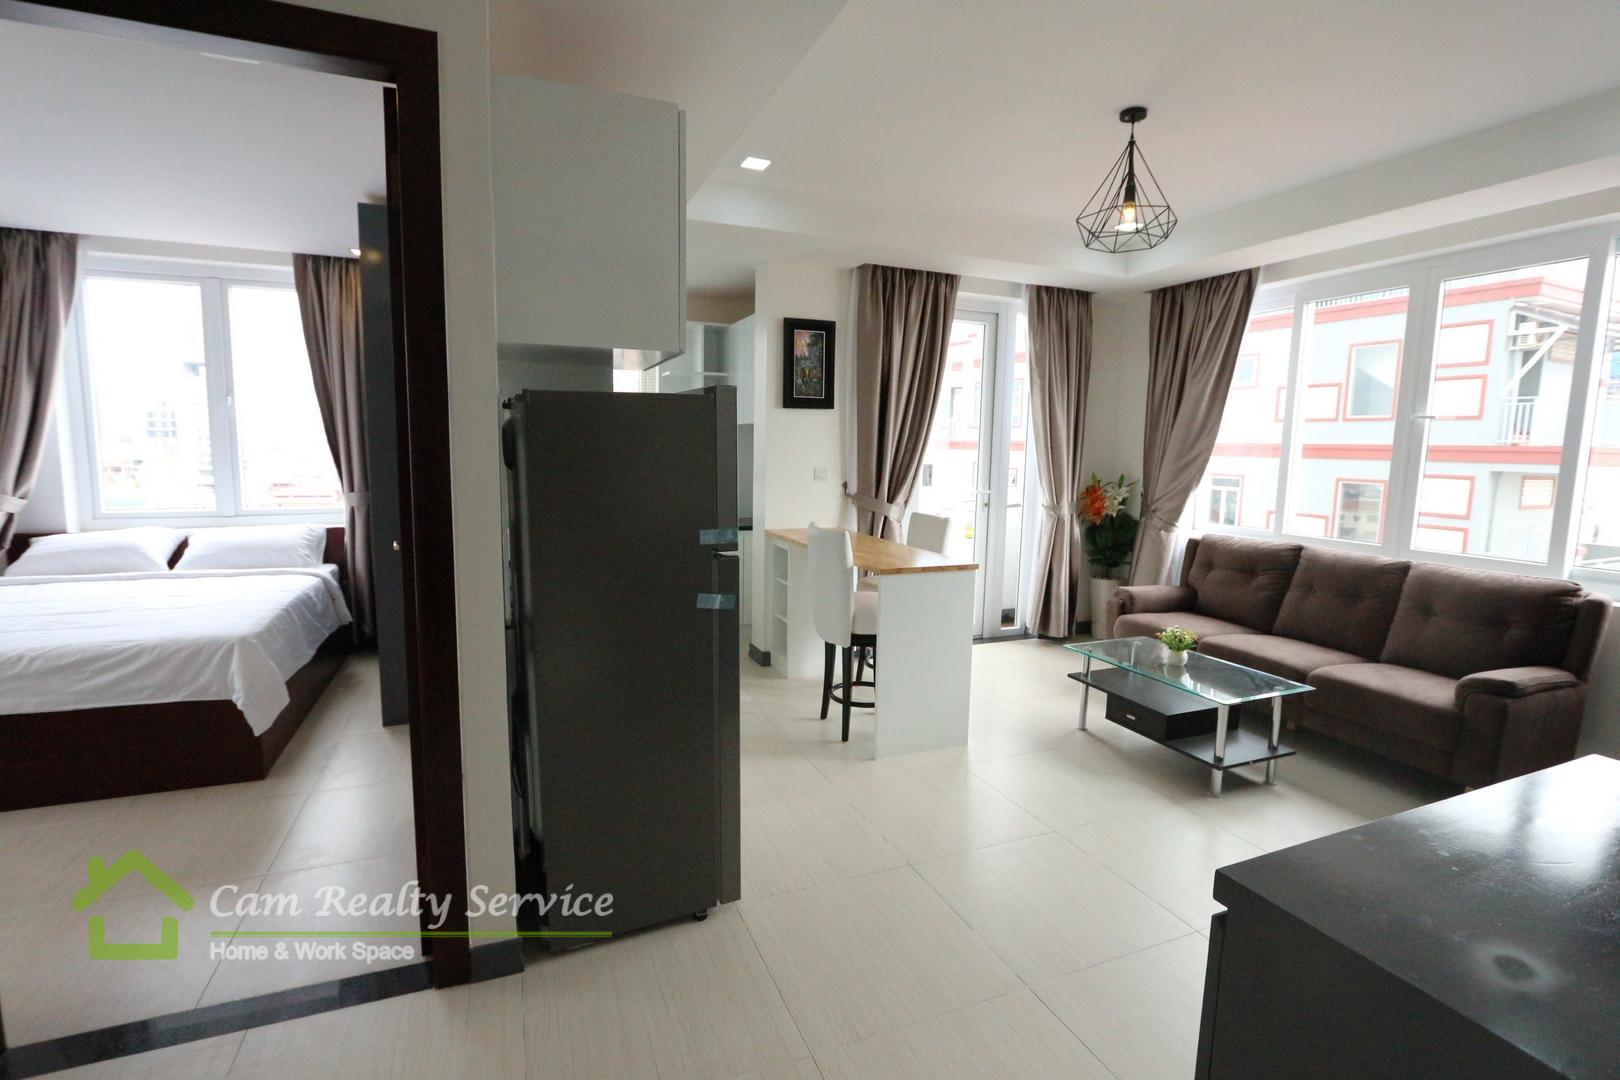 Russian market area| Modern style 1 bedroom serviced apartment for rent| 520$/month up| Phnom Penh